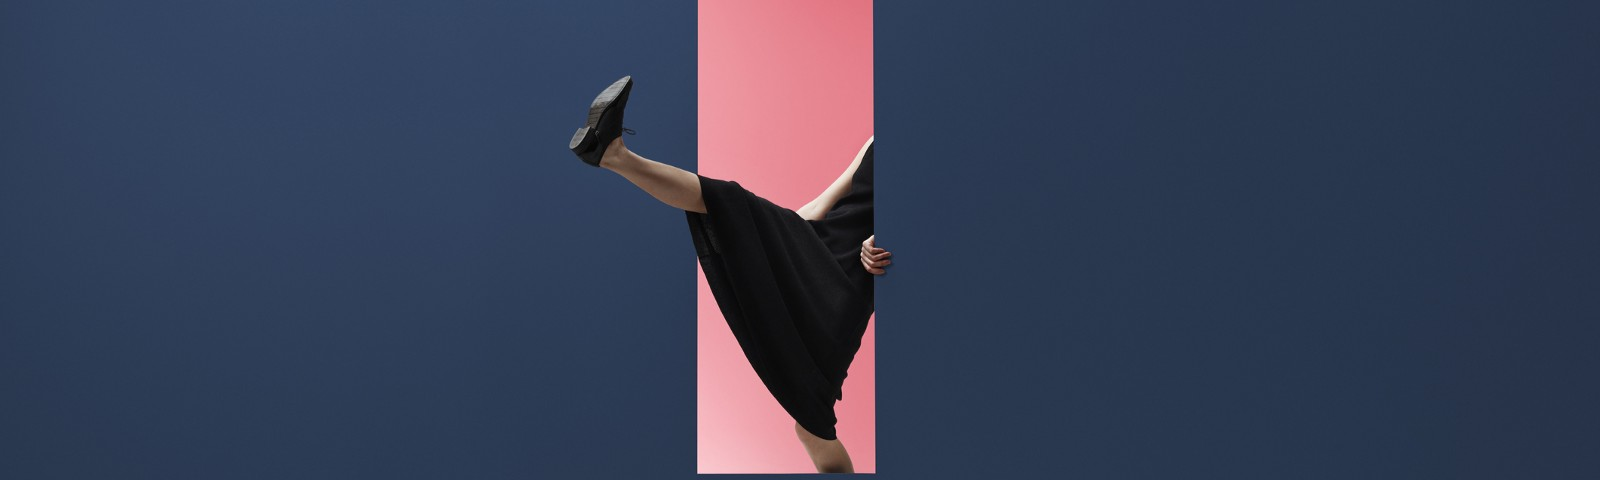 Woman stepping through an opening in the wall, head not visible, her leg in the air.